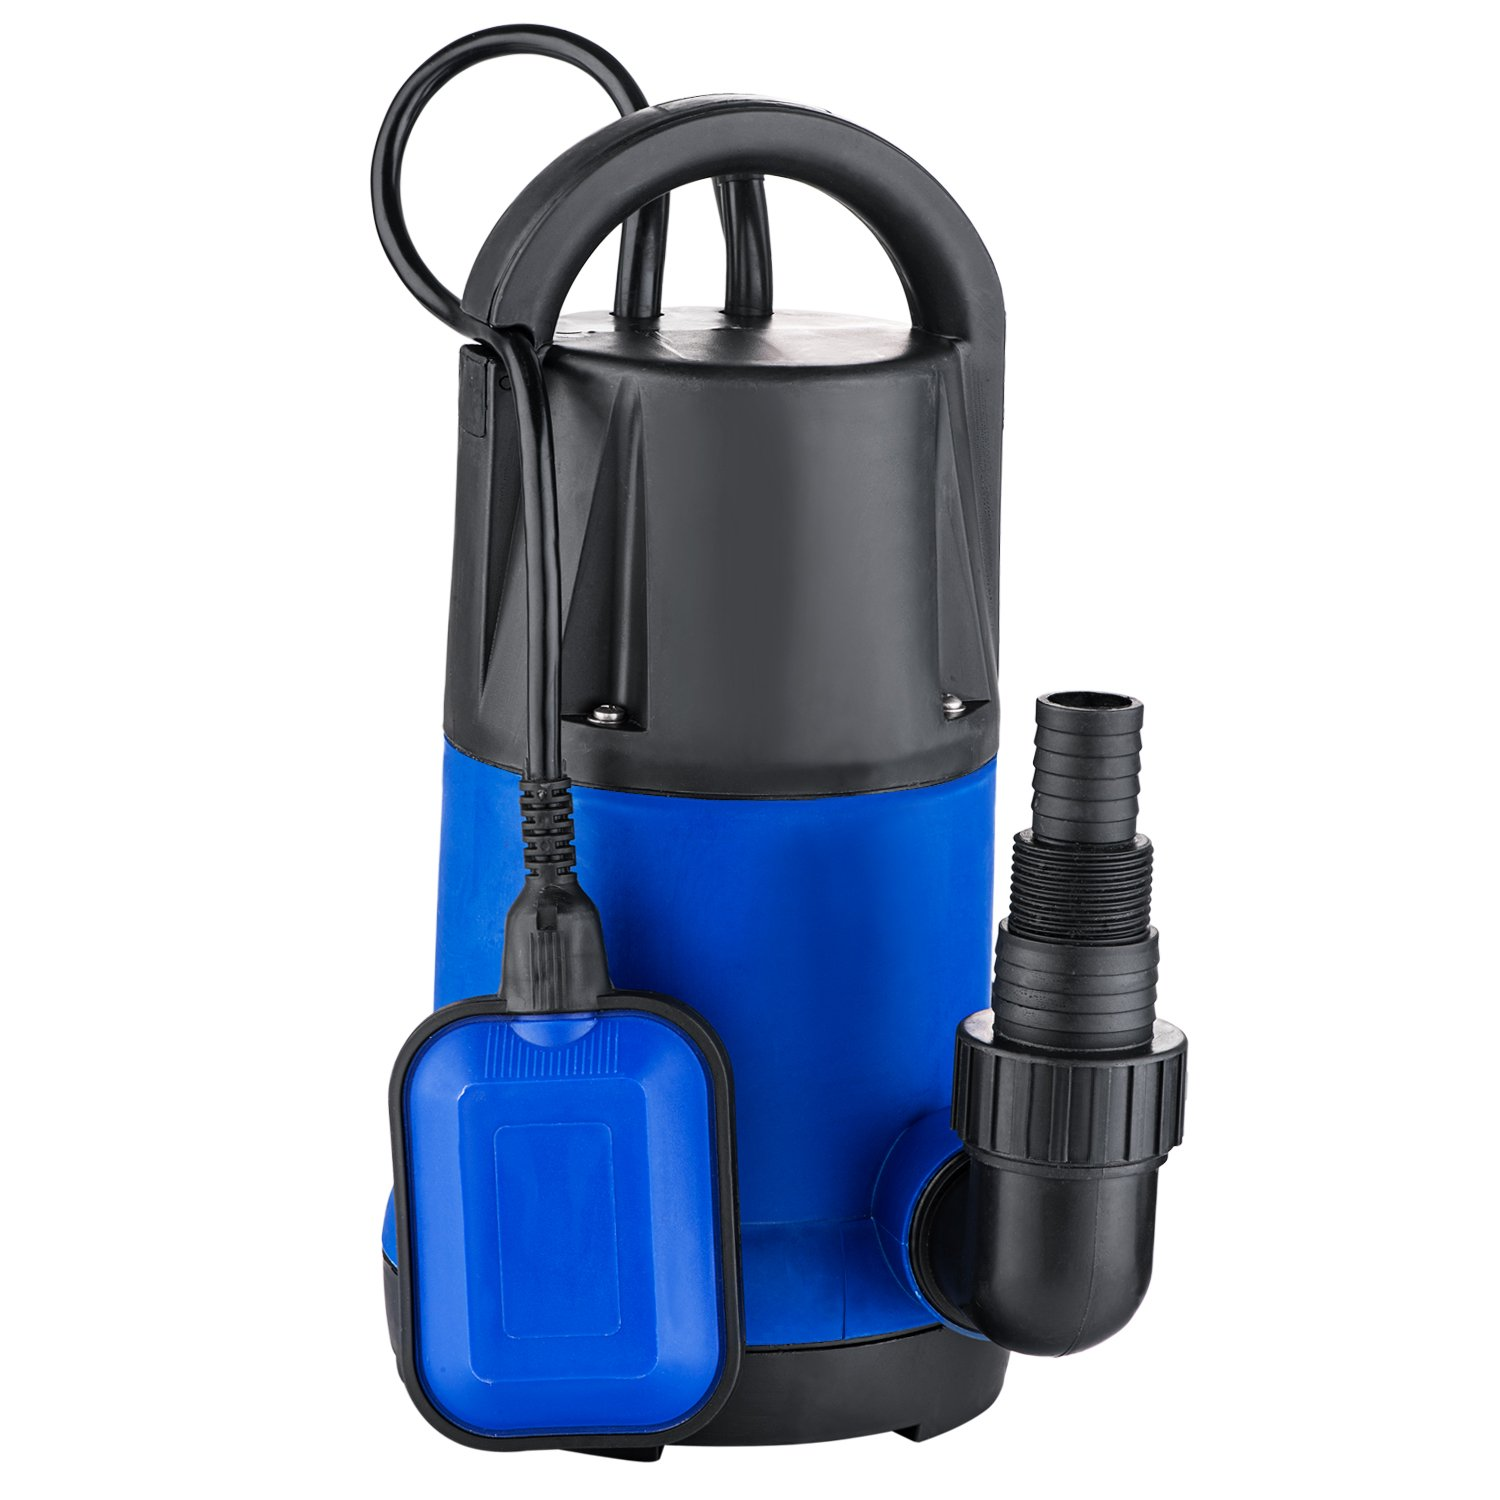 1HP Submersible Pump Stainless Shallow Well Pump Sprinkling Irrigation Booster Pump for Home Garden Irrigation